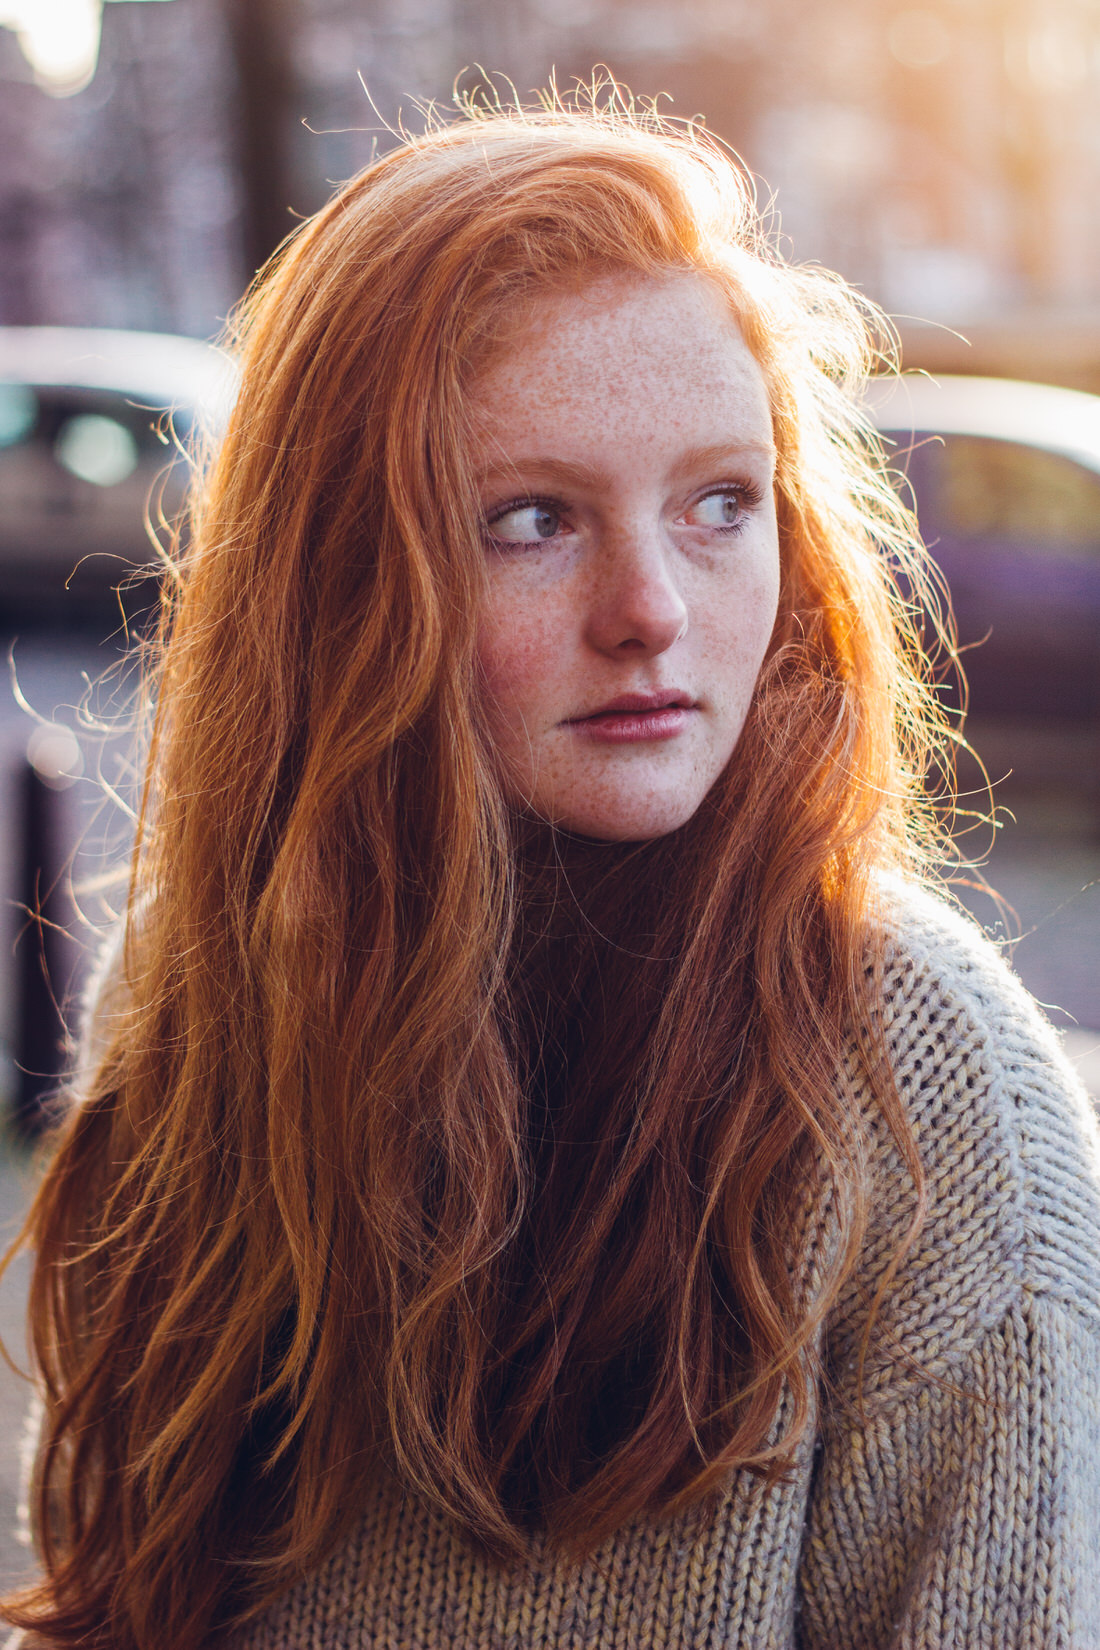 girl red hair freckles